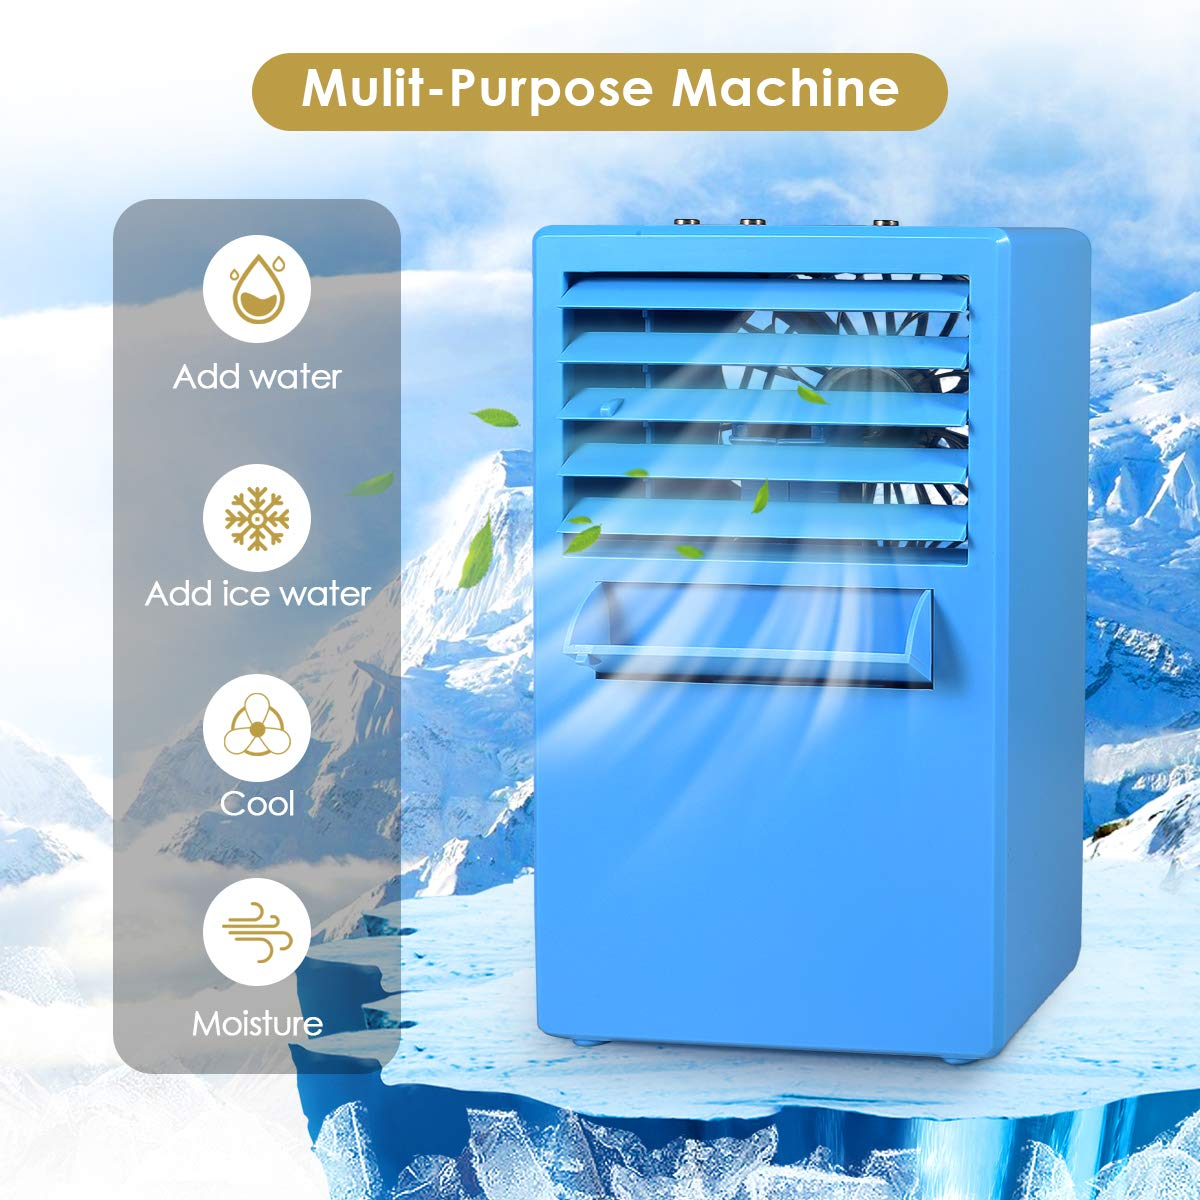 Room Dorm Outdoor Air Personal Space Cooler Small Desktop Fan Quiet Personal Table Fan Mini Evaporative Air Circulator Cooler Humidifier Bladeless Quiet for Office Personal Air Conditioner Fan